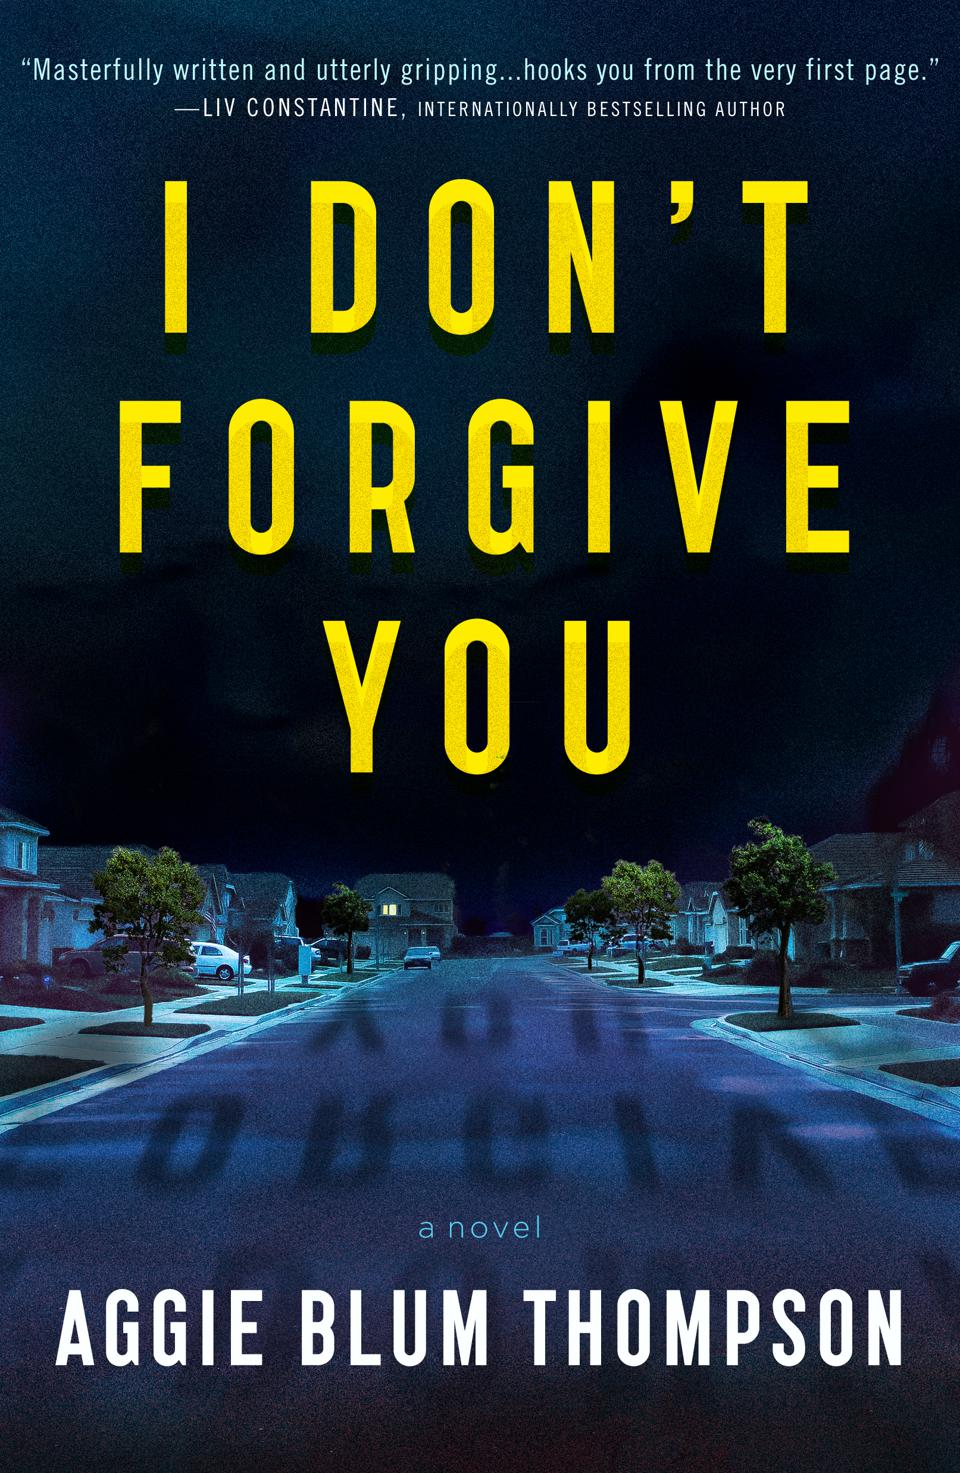 forge thriller I don't forgive you aggie blum thompson book cover novel fiction